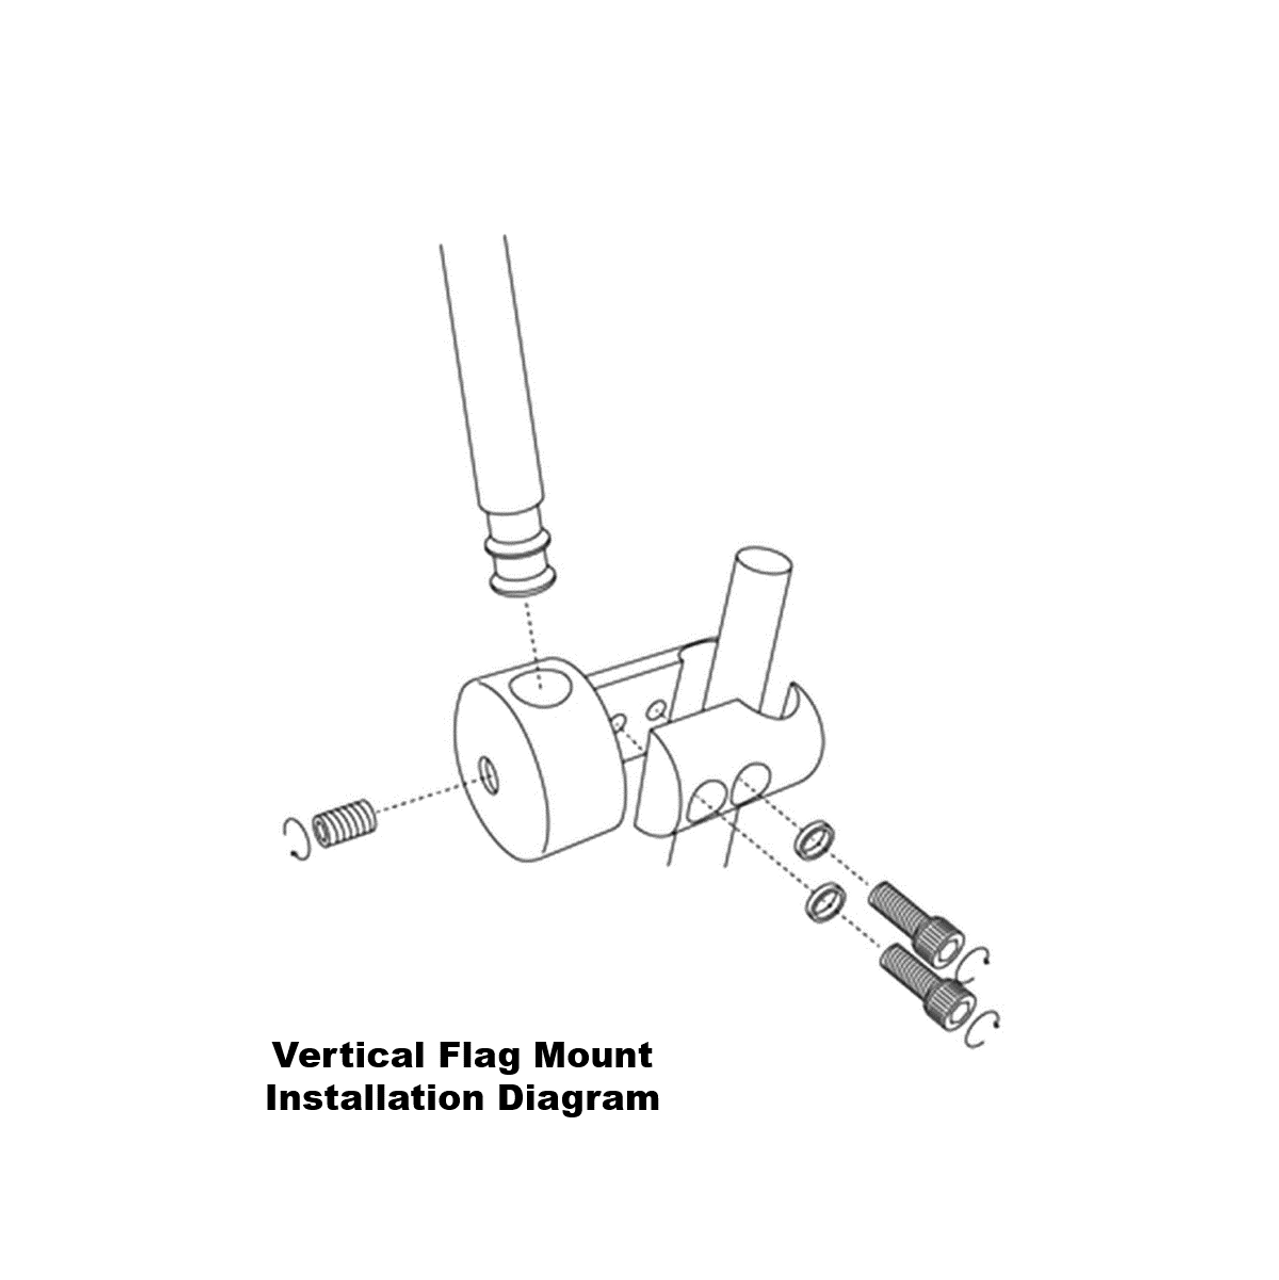 Vertical flag mount installation diagram (exploded view)